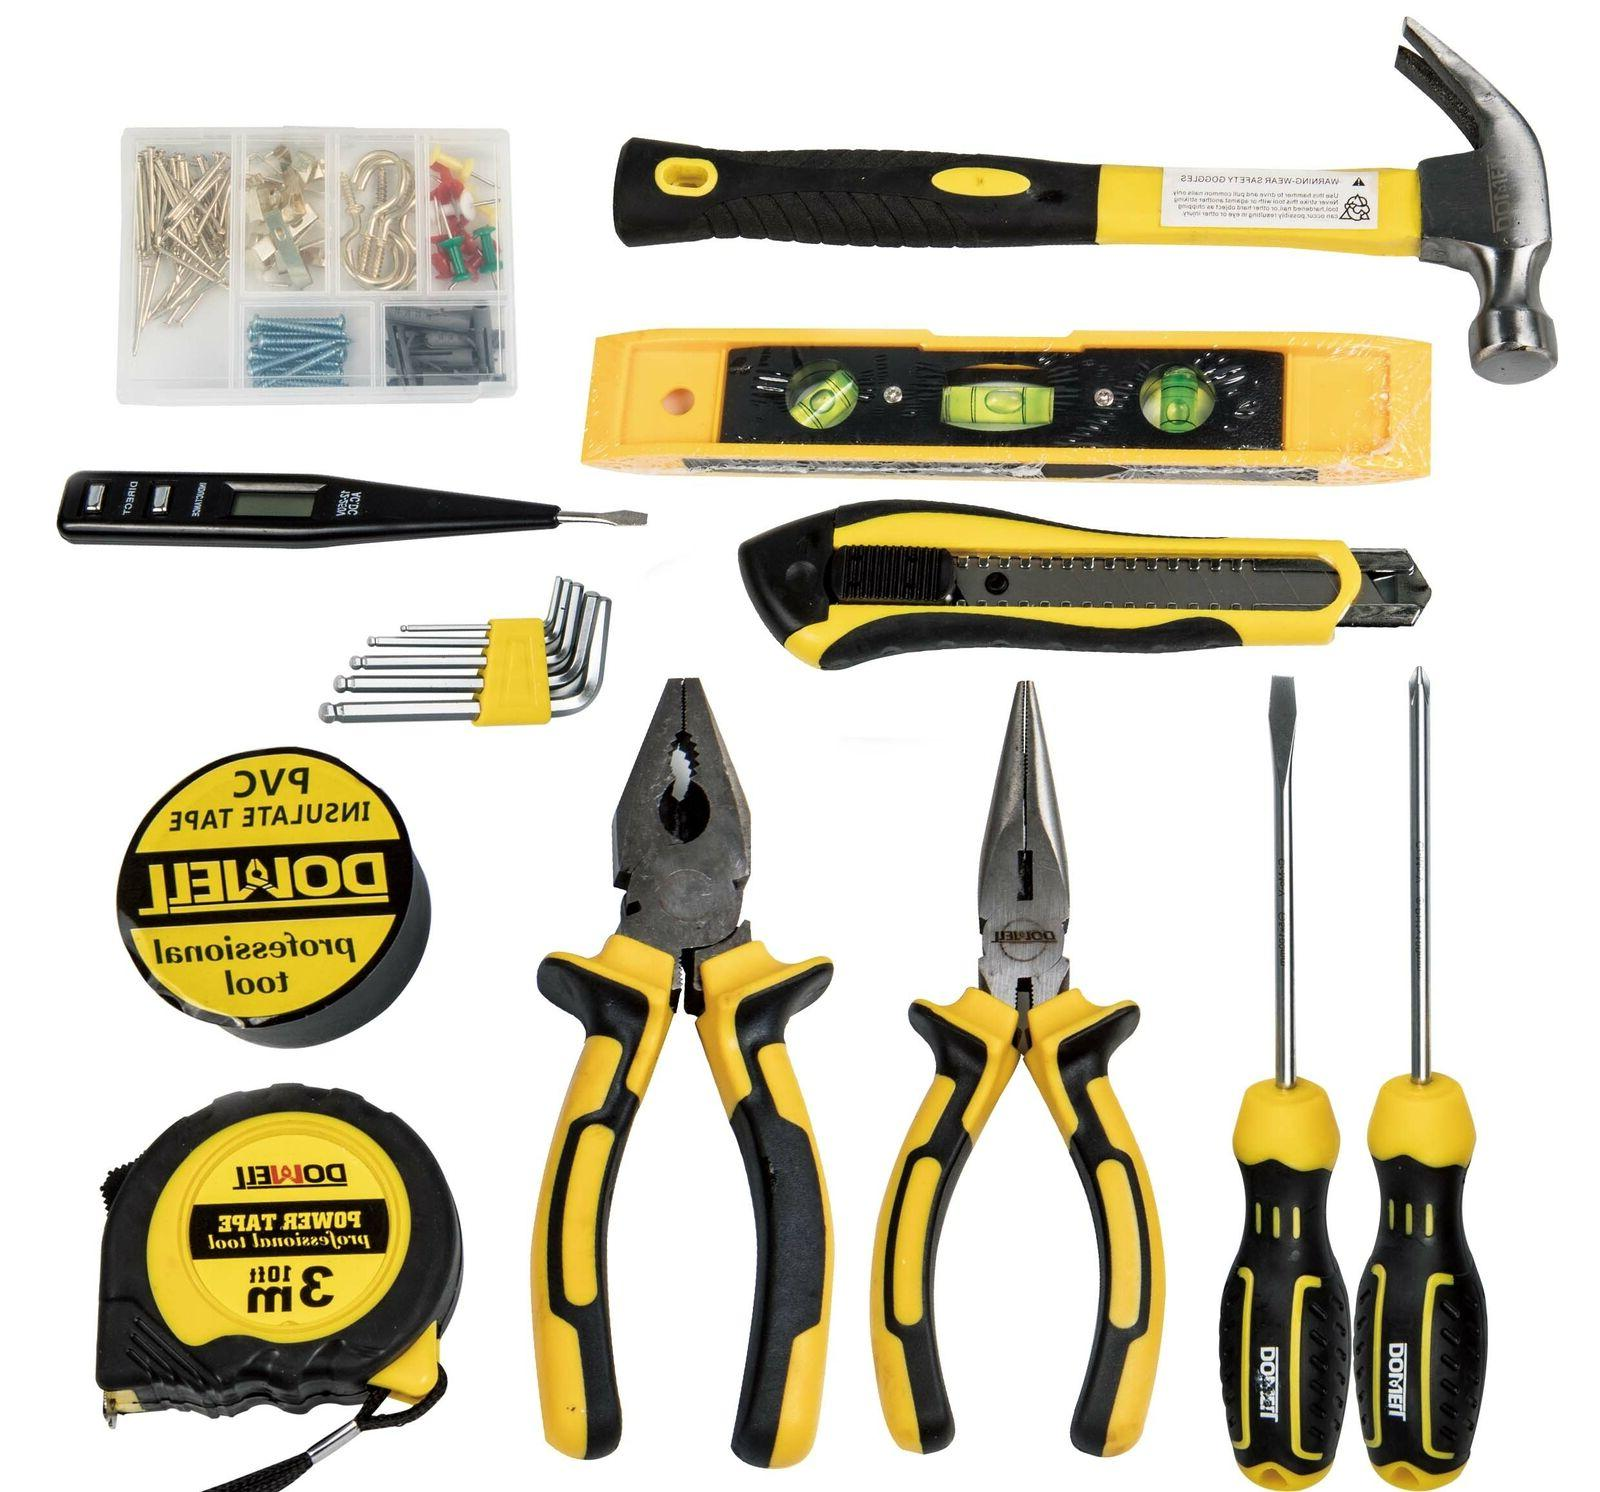 Dowell 116-Piece Homeowner General Portable Repair Kit with Tool